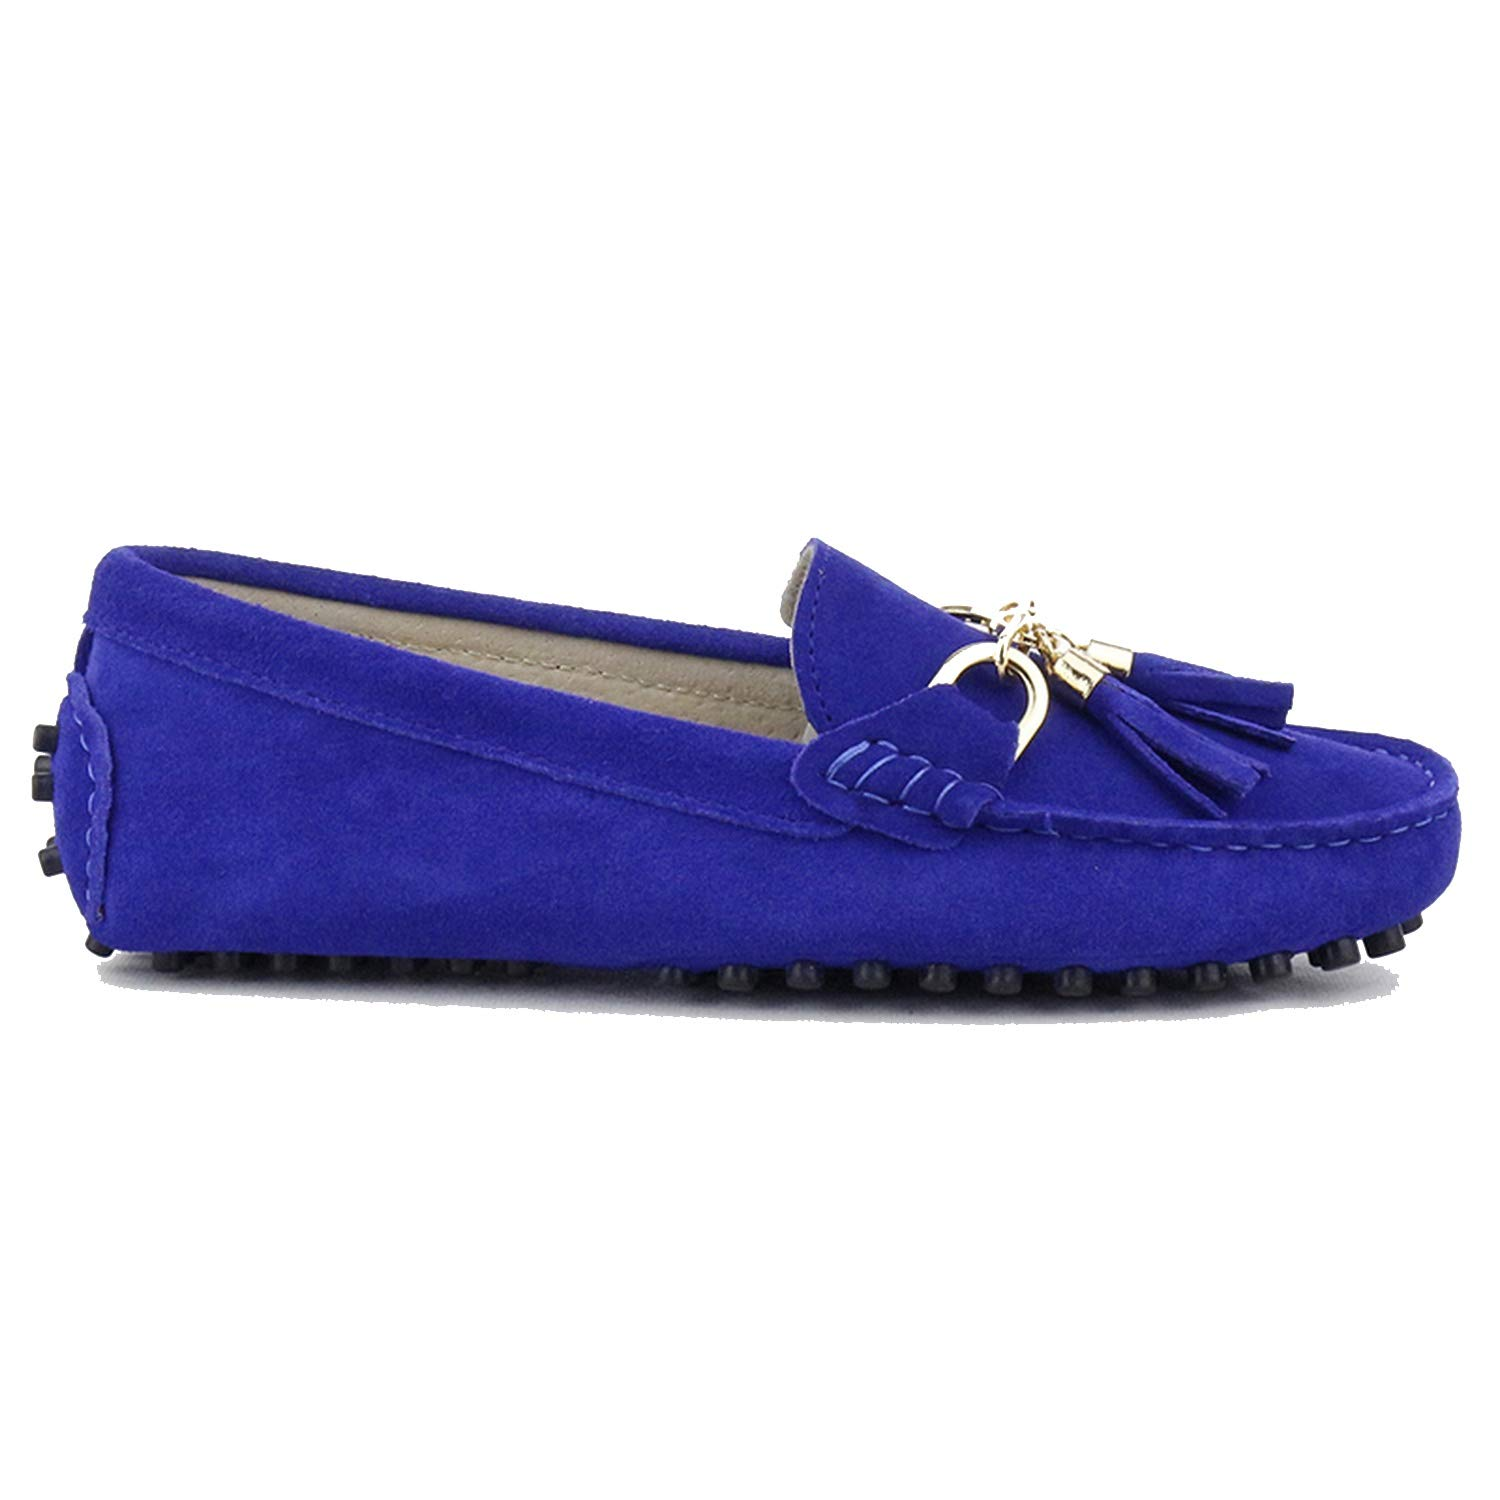 Royal bluee Fashion Women Lady Leather Loafers Casual Driving shoes Women Flats shoes